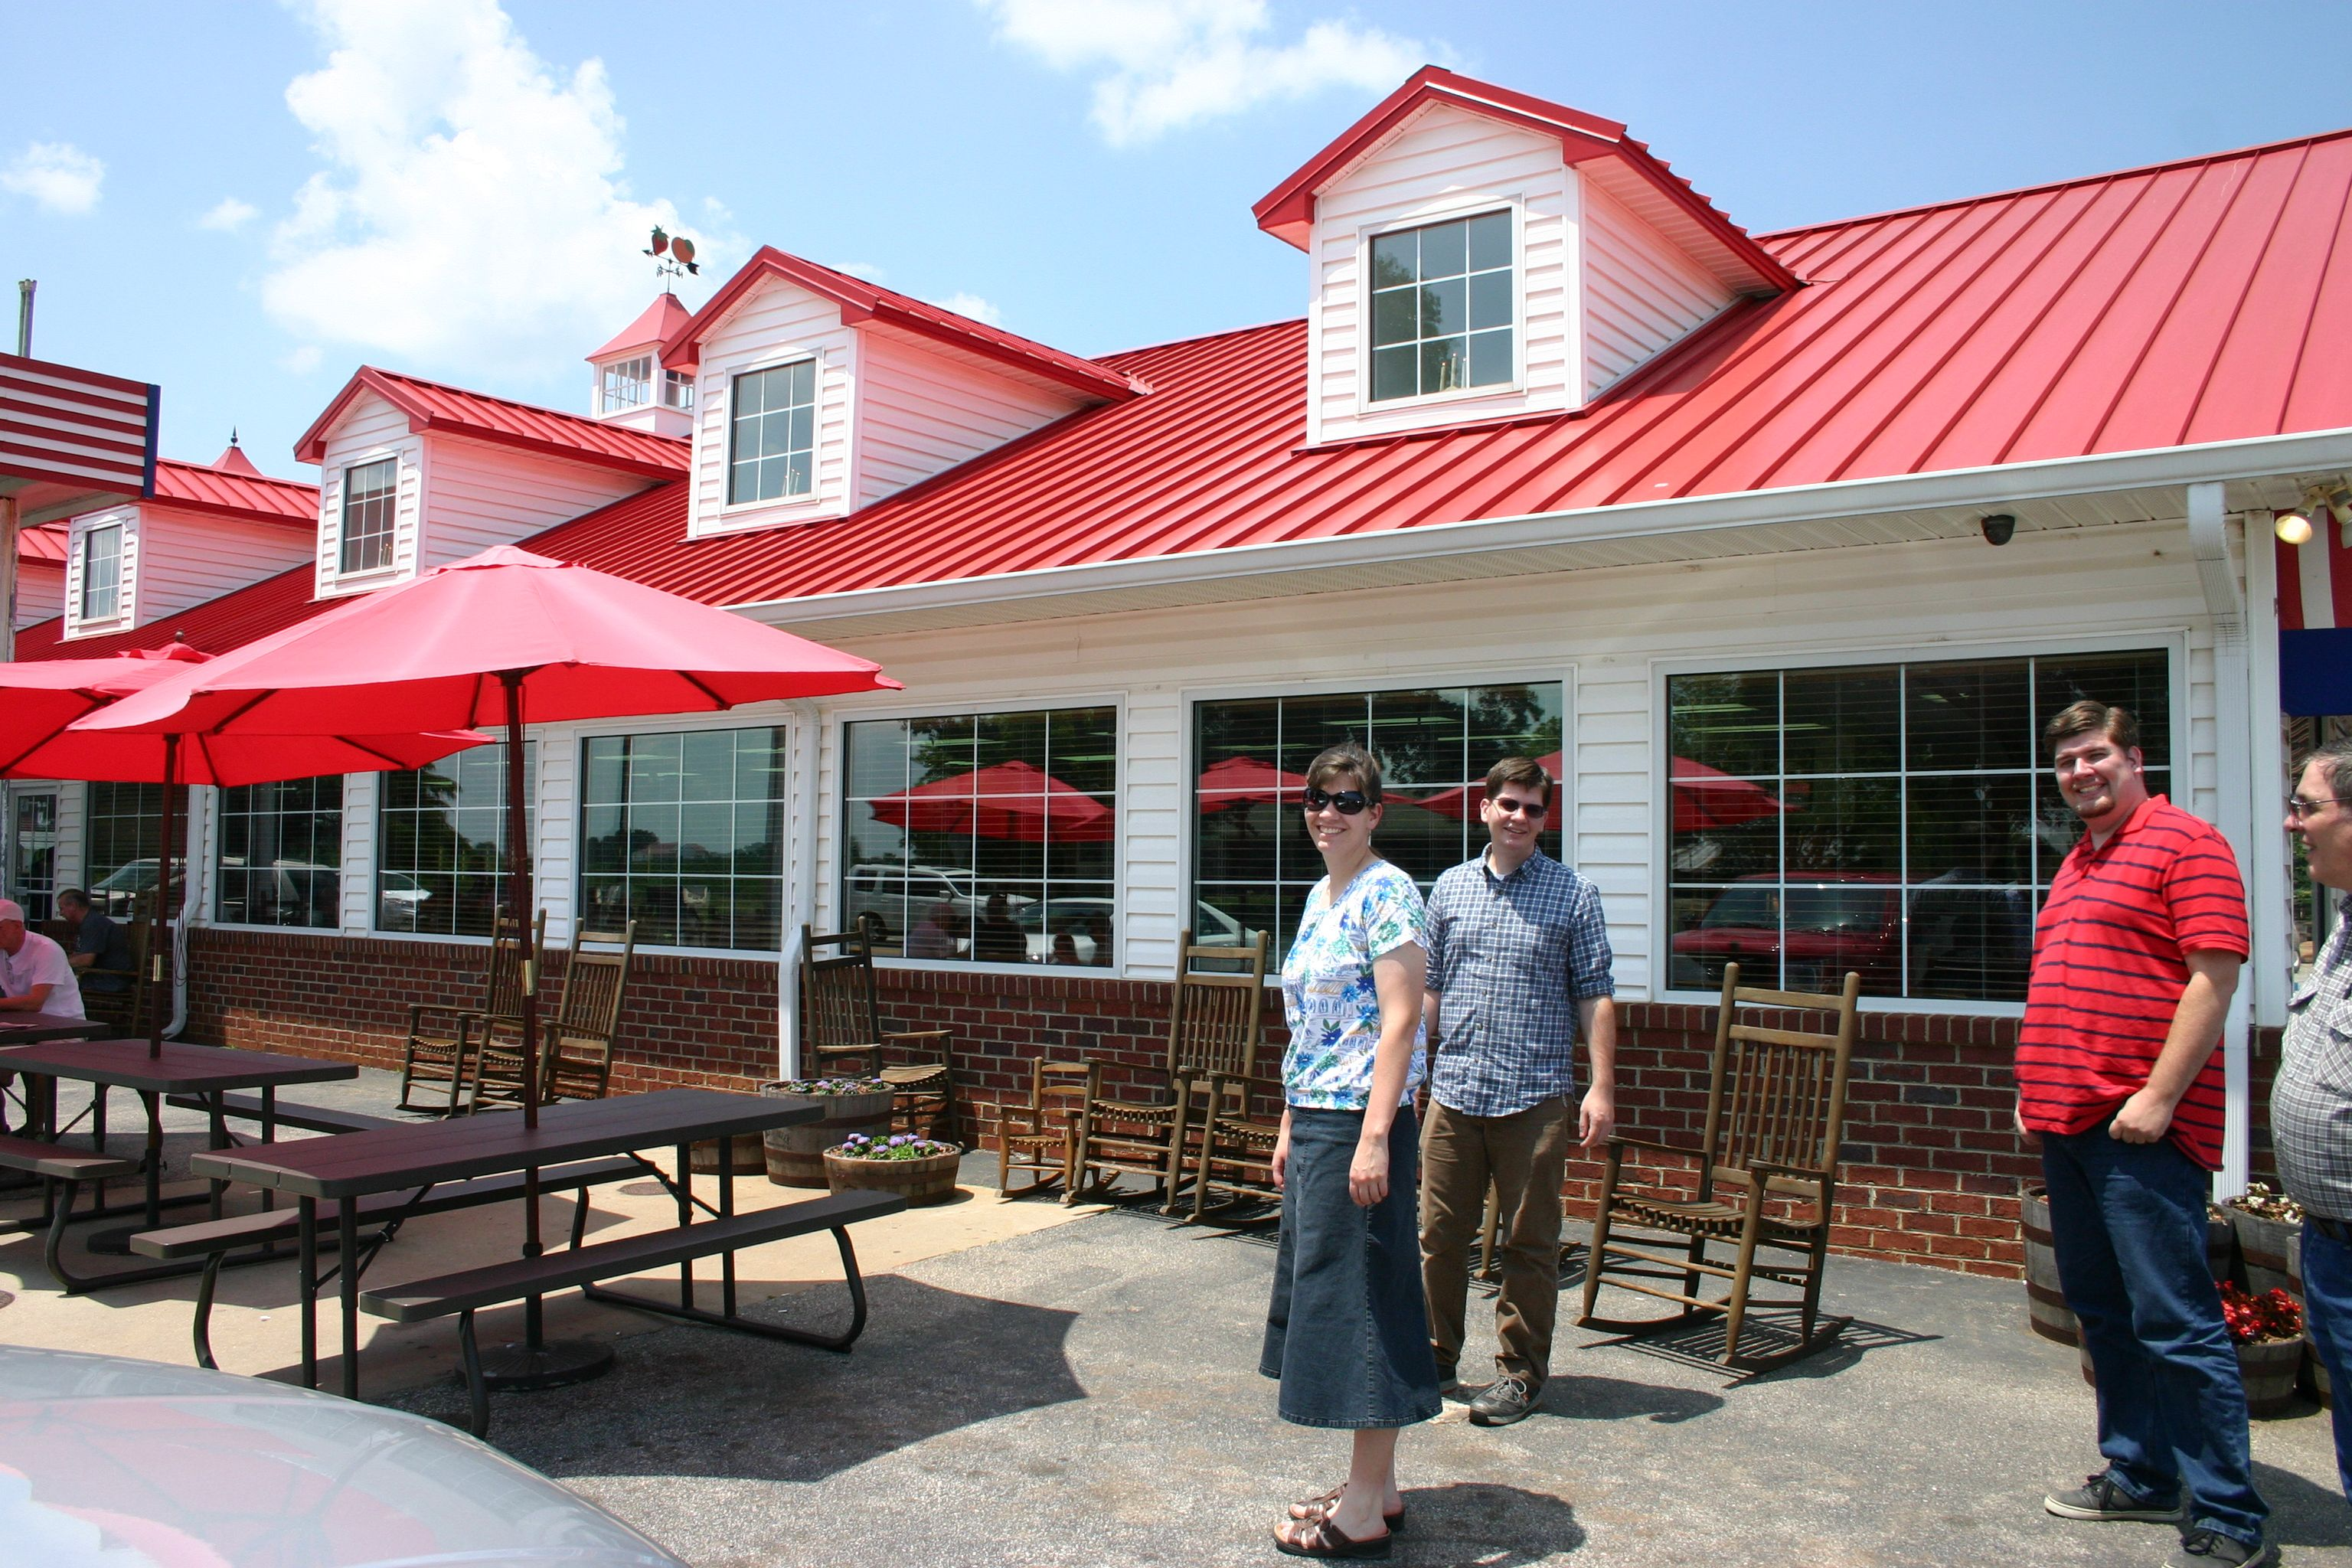 Strawberry Hill Near Scenic Hwy 11 And Gaffney Is Where We Ate While Site Seeing Spartanburg South Carolina Strawberry Hill Scenic